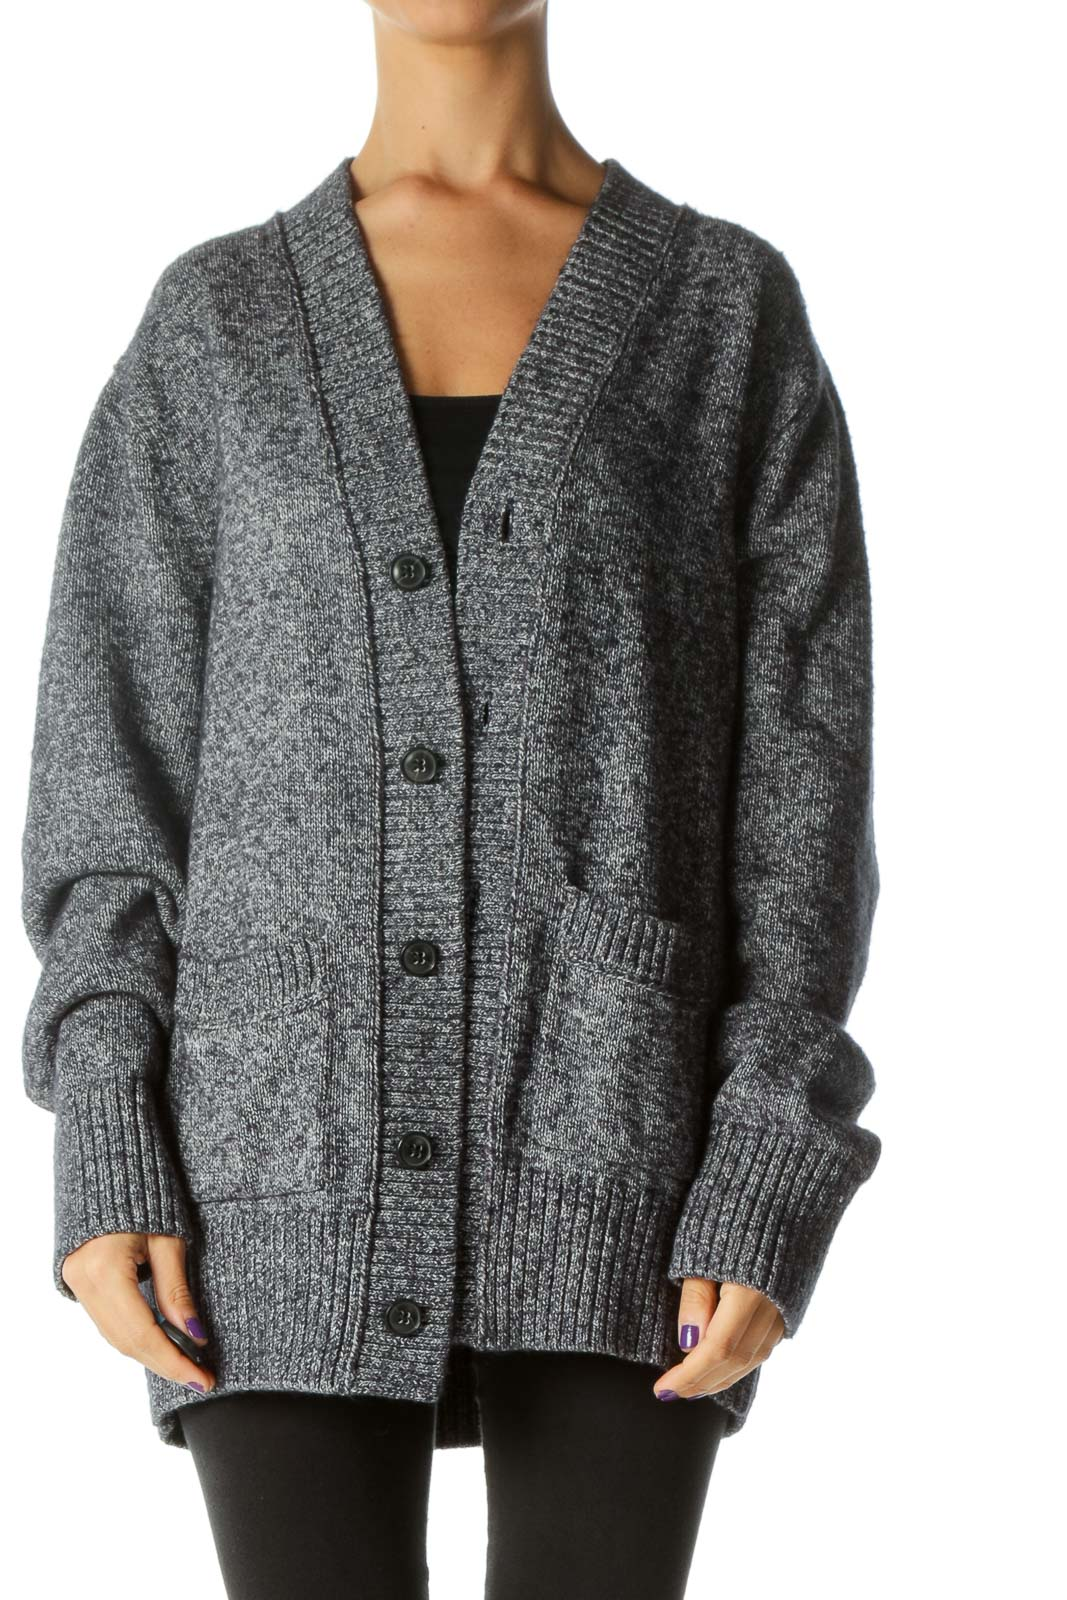 Blue White Buttoned Pocketed Knit Thick Cardigan